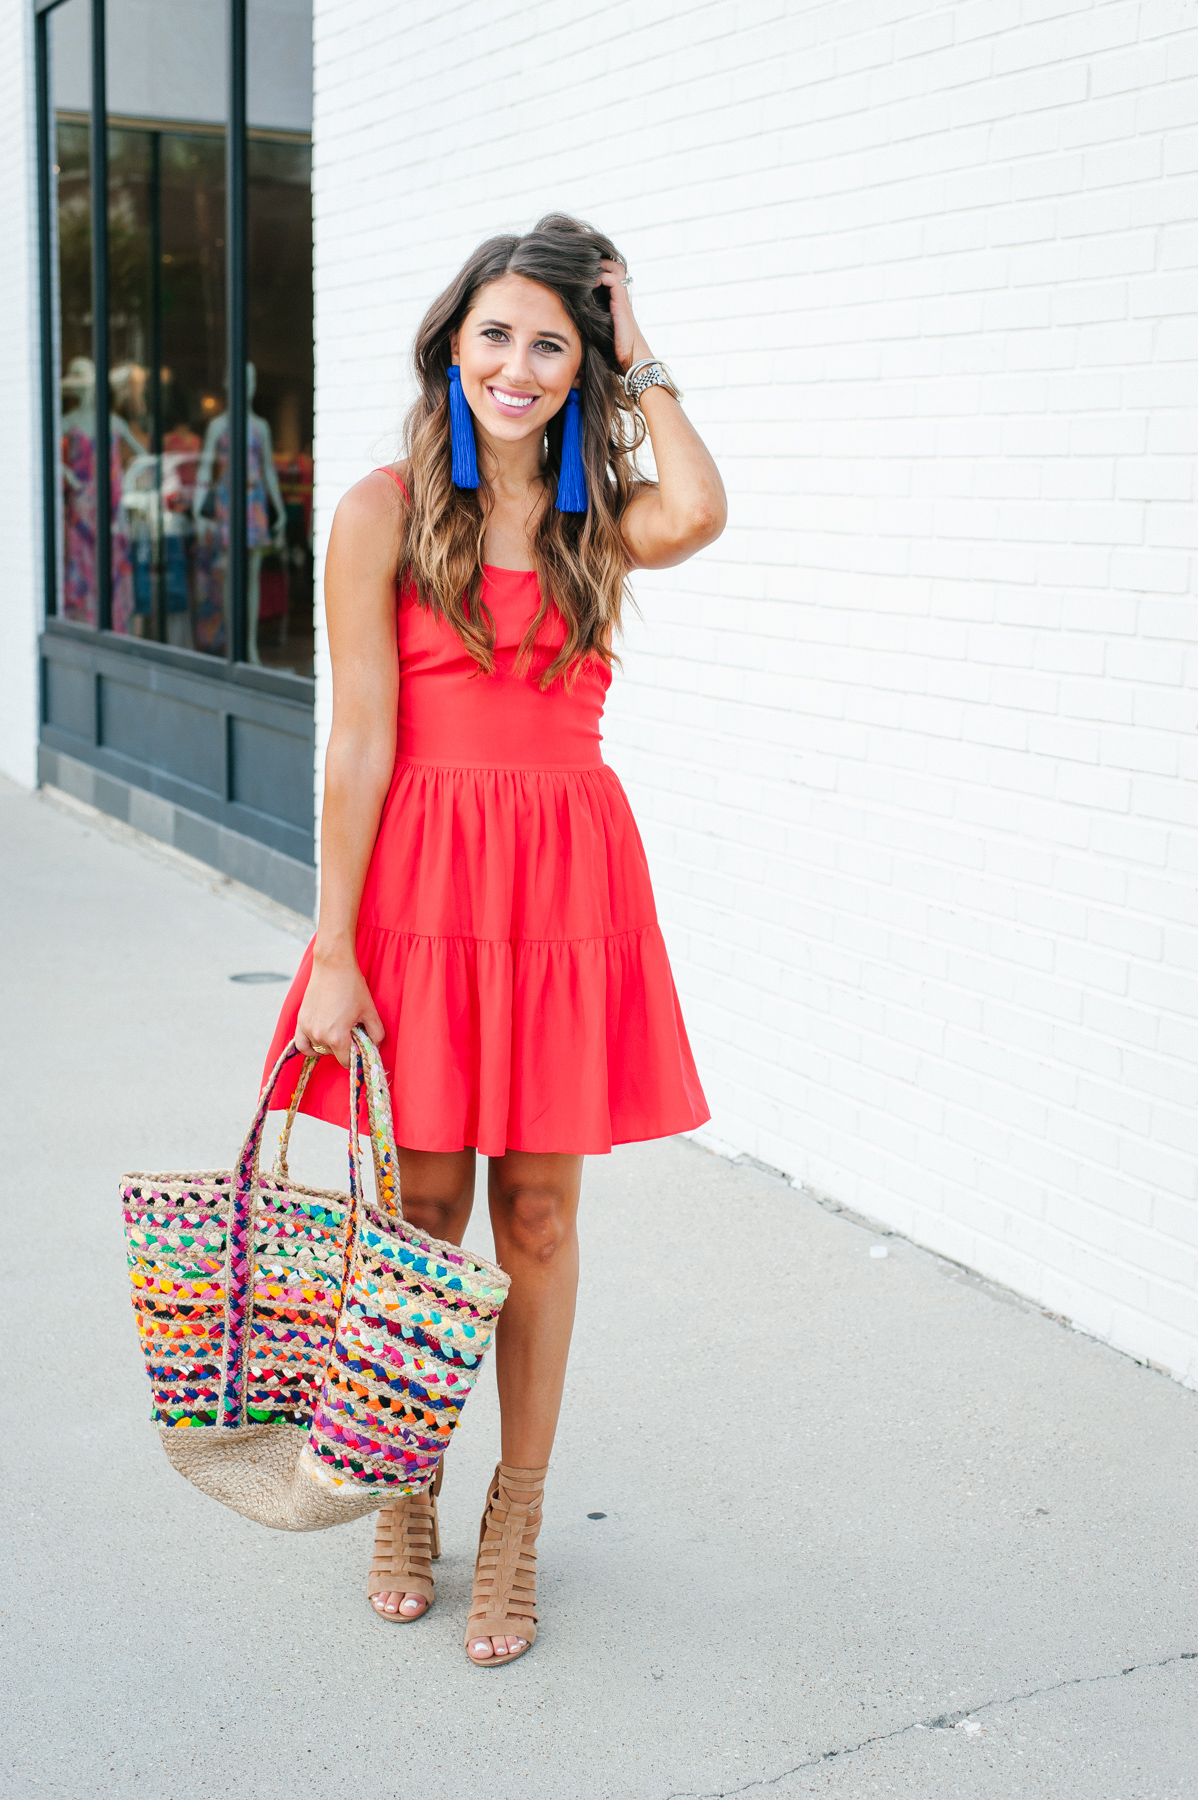 Dress Up Buttercup, Dede Raad, houston blogger, fashion blogger, Spice up your life